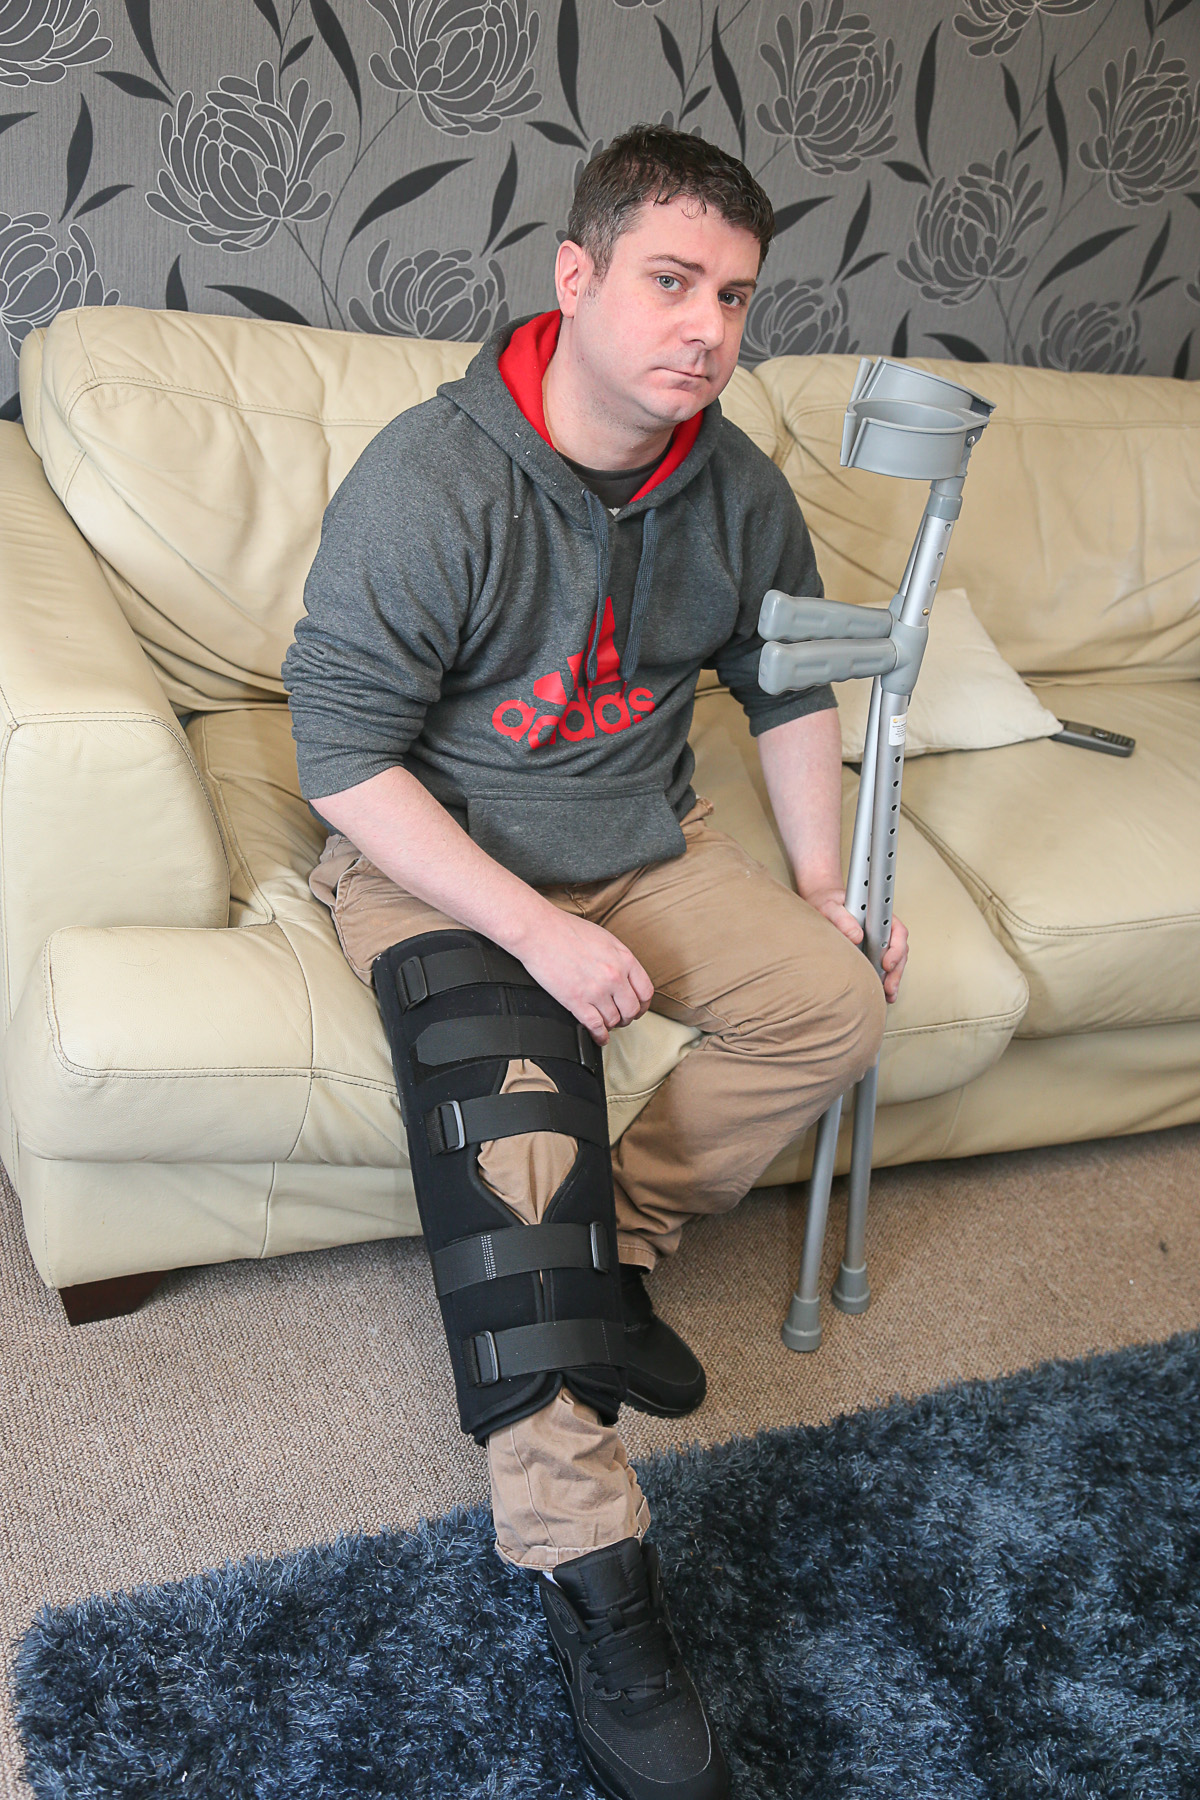 Colin Wilson, of Braithwaite, whose broken leg failed to be diagnosed by two different hospitals, leaving him in agony as he still waits for surgery to mend the fractured tibia